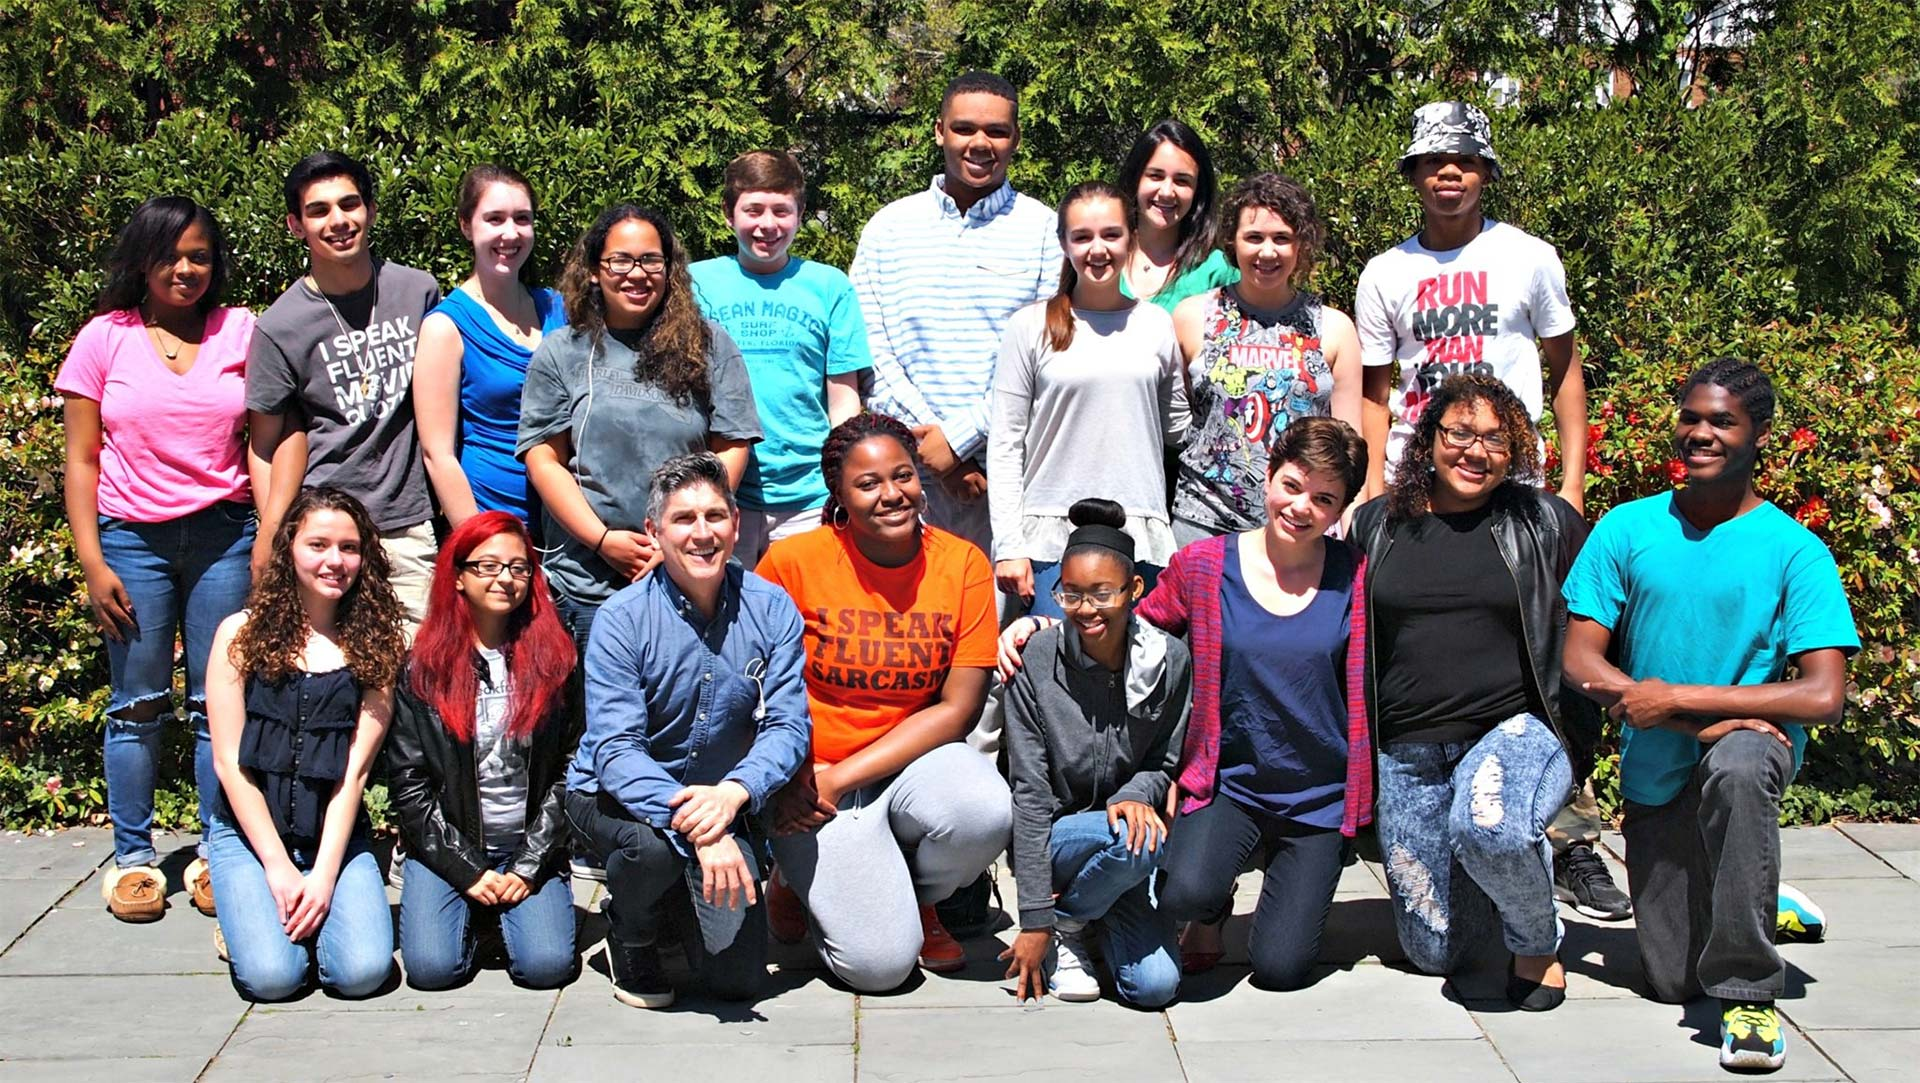 Project: Transform students with Playwright/Actor James Lecesne (front row, 3rd from left) and teaching artist Natalie Pertz (front row, 3rd from right)